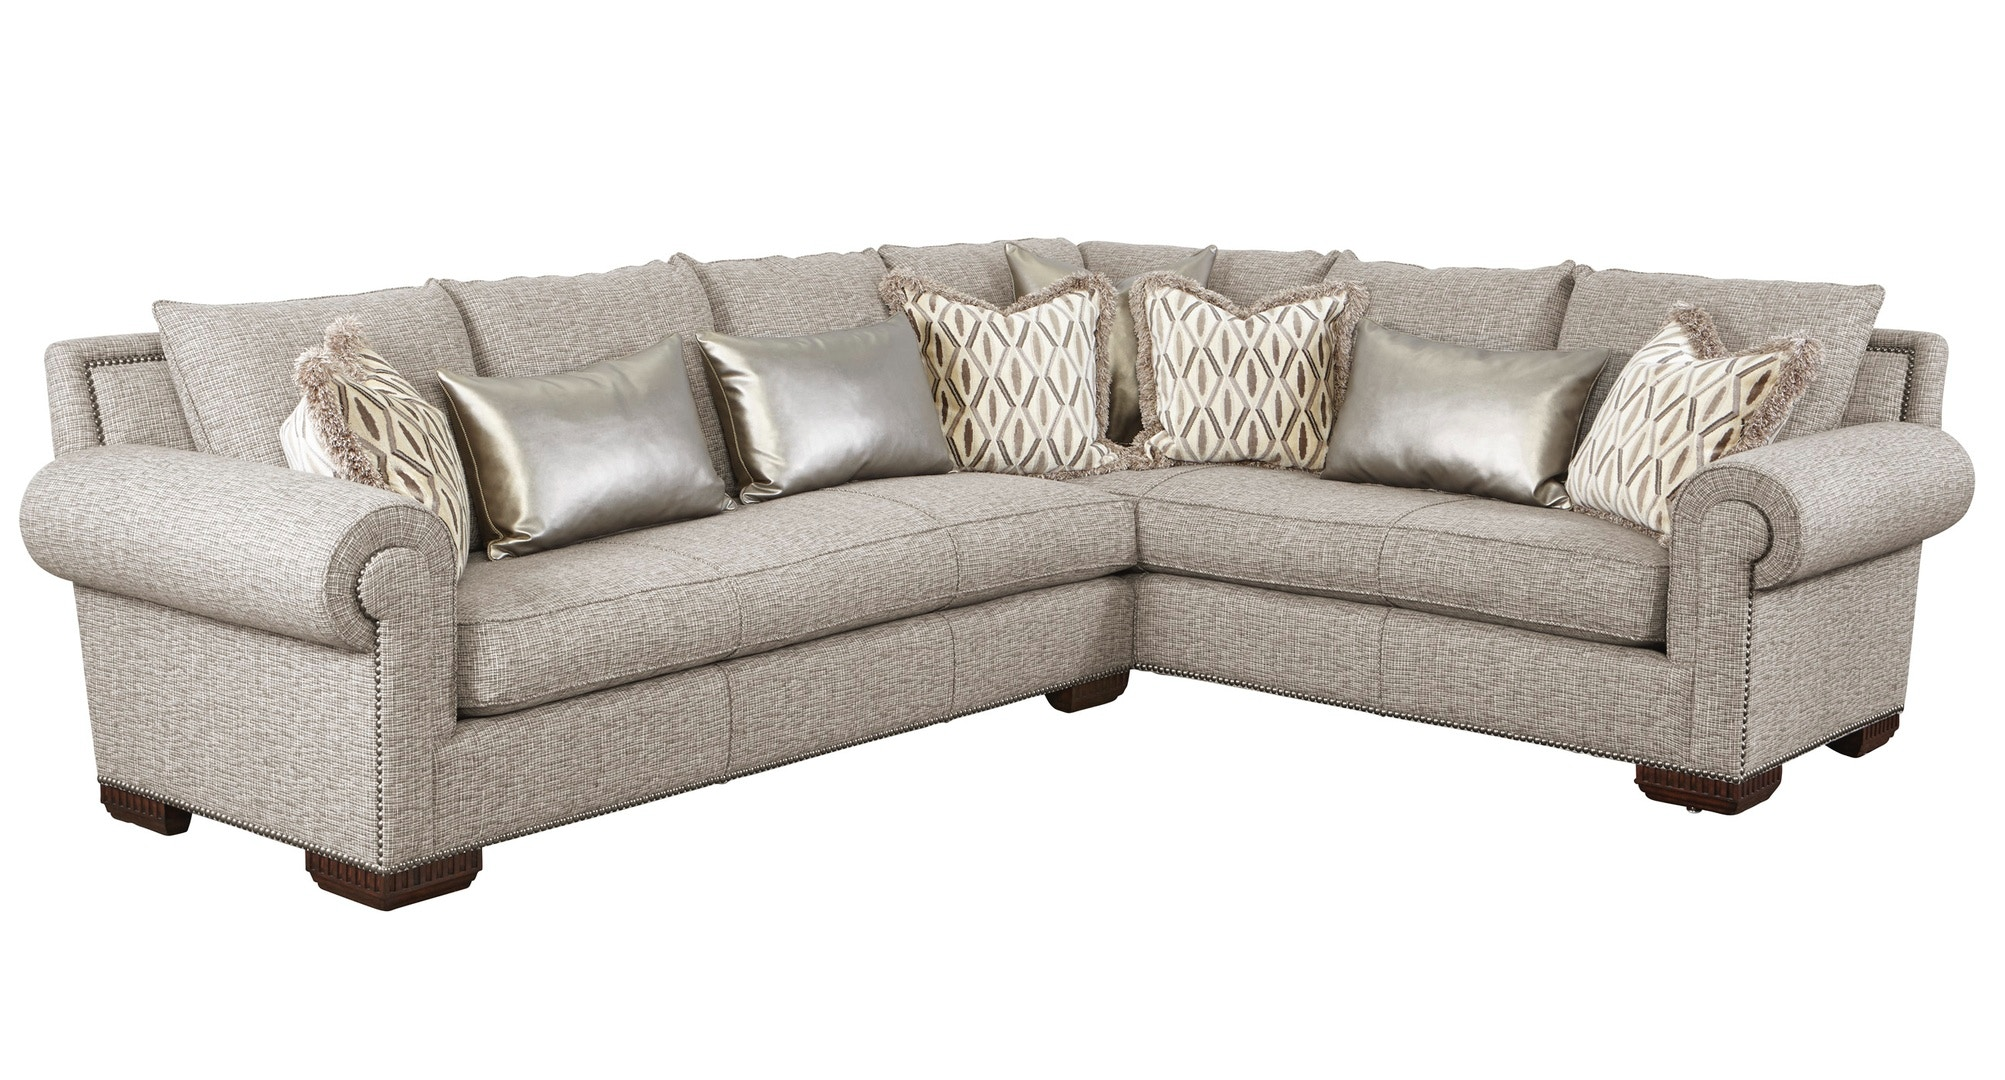 Exceptional Marge Carson Bentley Sectional BYSECS